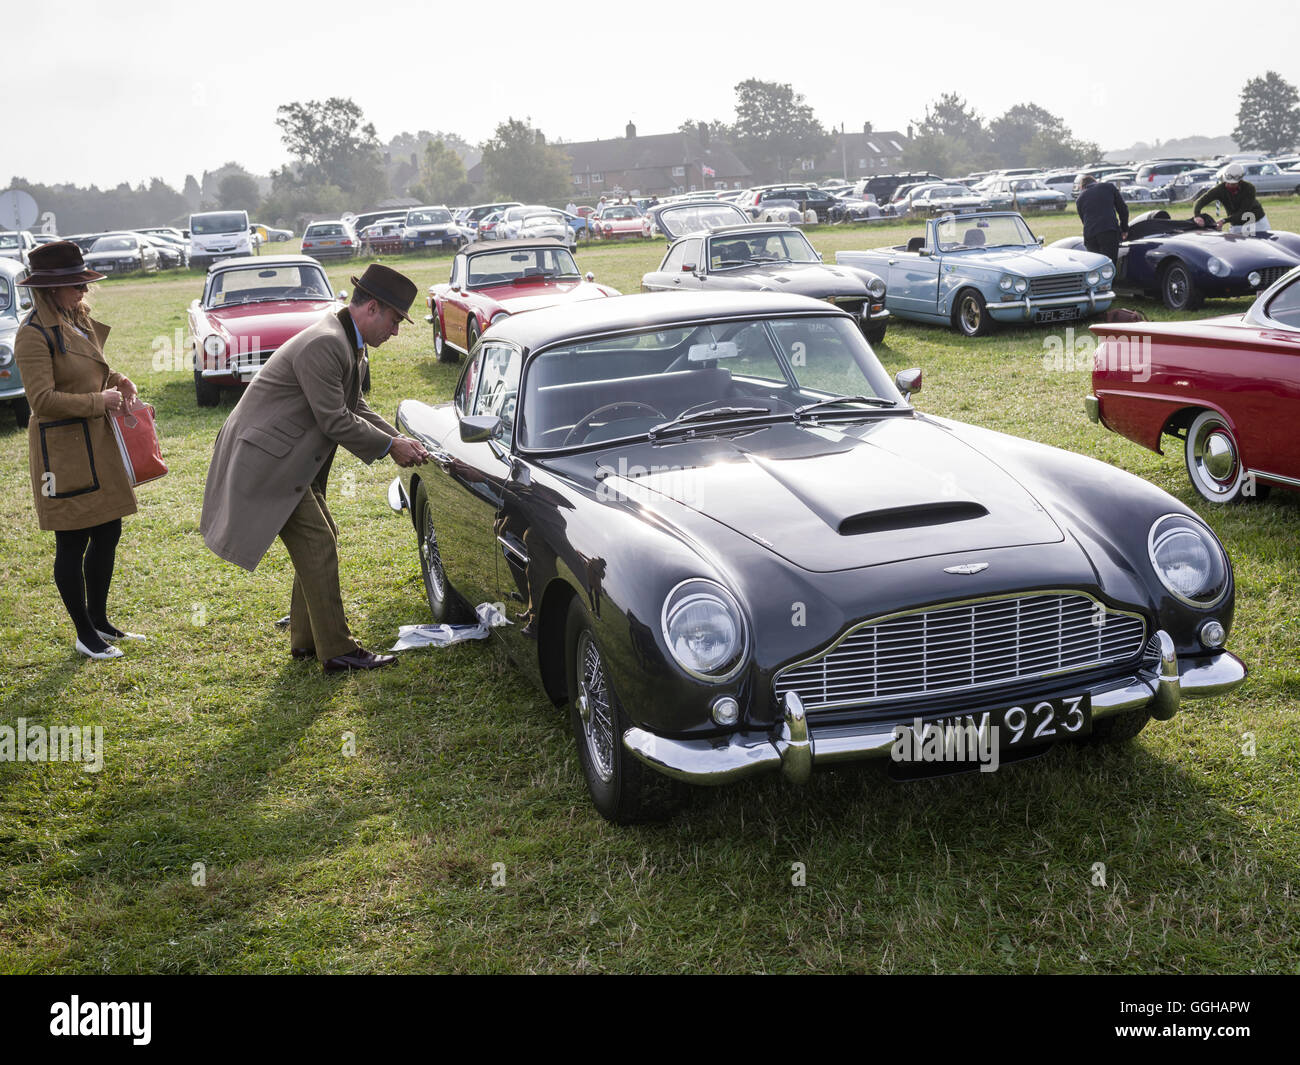 Aston Martin DB5, Besucher-Parkplatz, Goodwood Revival 2014, Racing Sport, Oldtimer, Goodwood, Chichester, Sussex, Stockbild